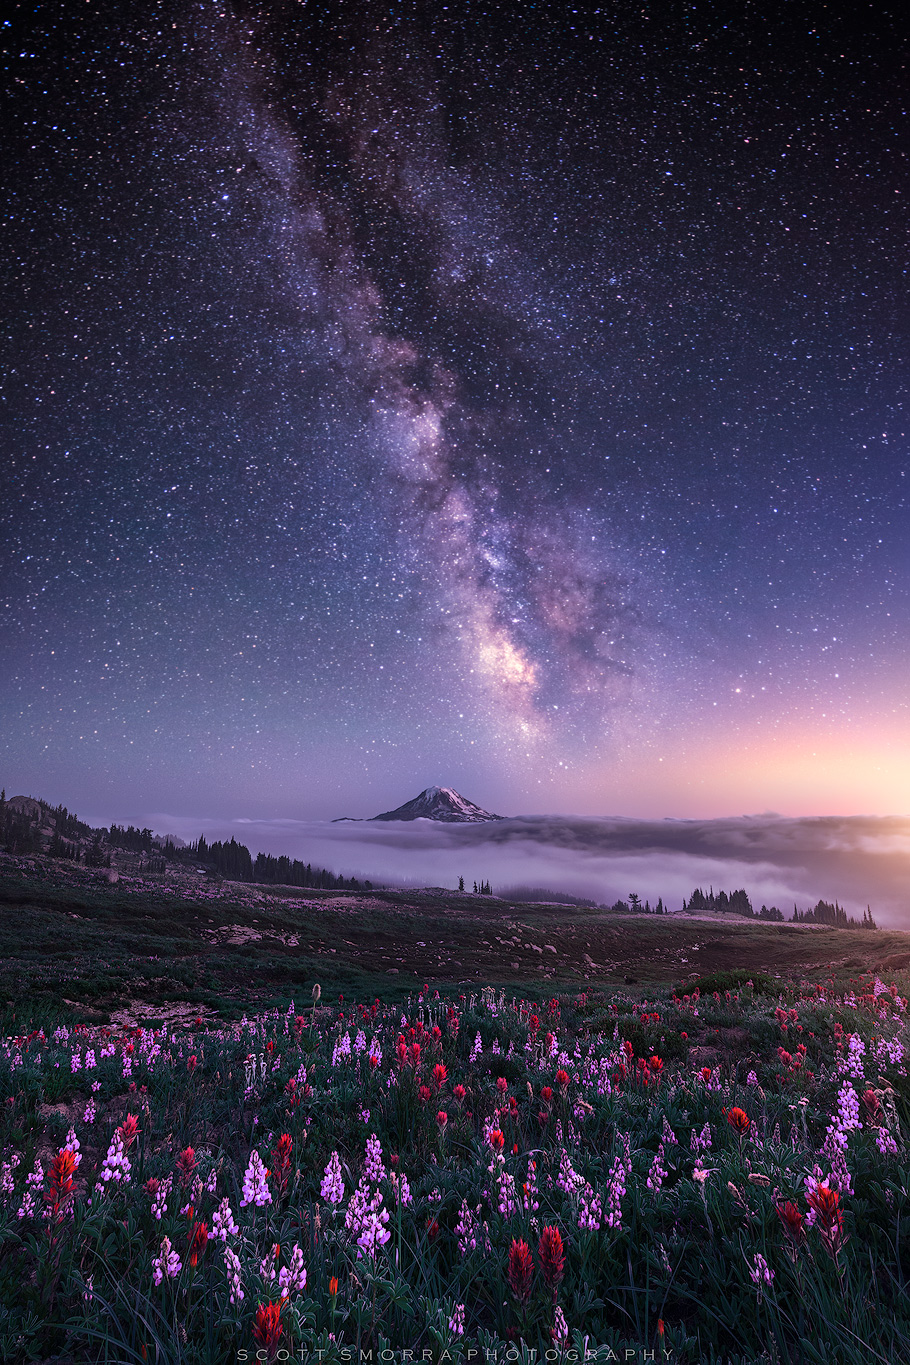 Fine Art Limited Edition of 100 - The Milky Way and millions of other stars above Mt Adams and a field of lupine and paintbrush...